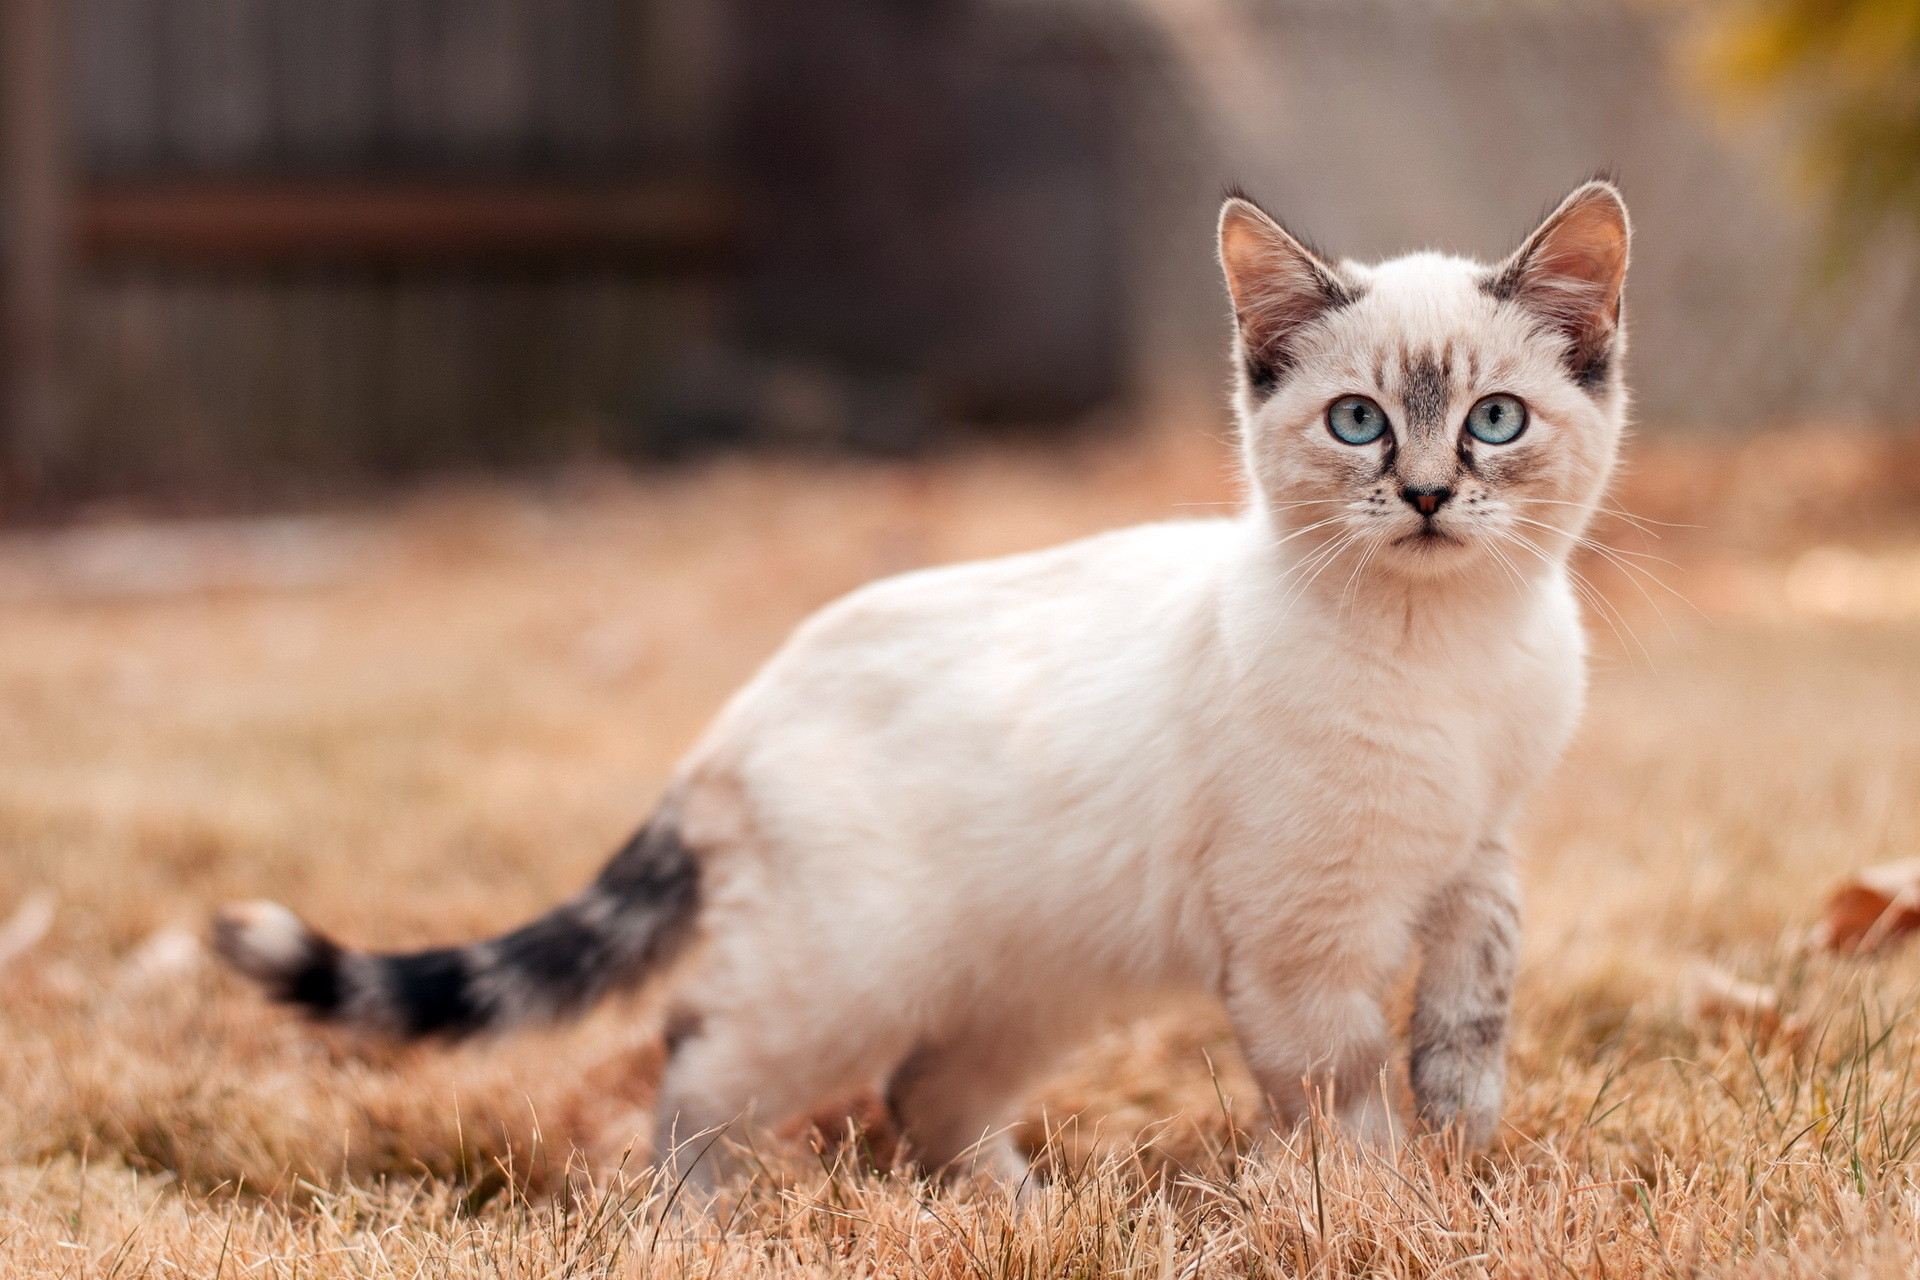 Amrican Cat HD Wallpapers Cat Desktop Wallpapers and Images Cool